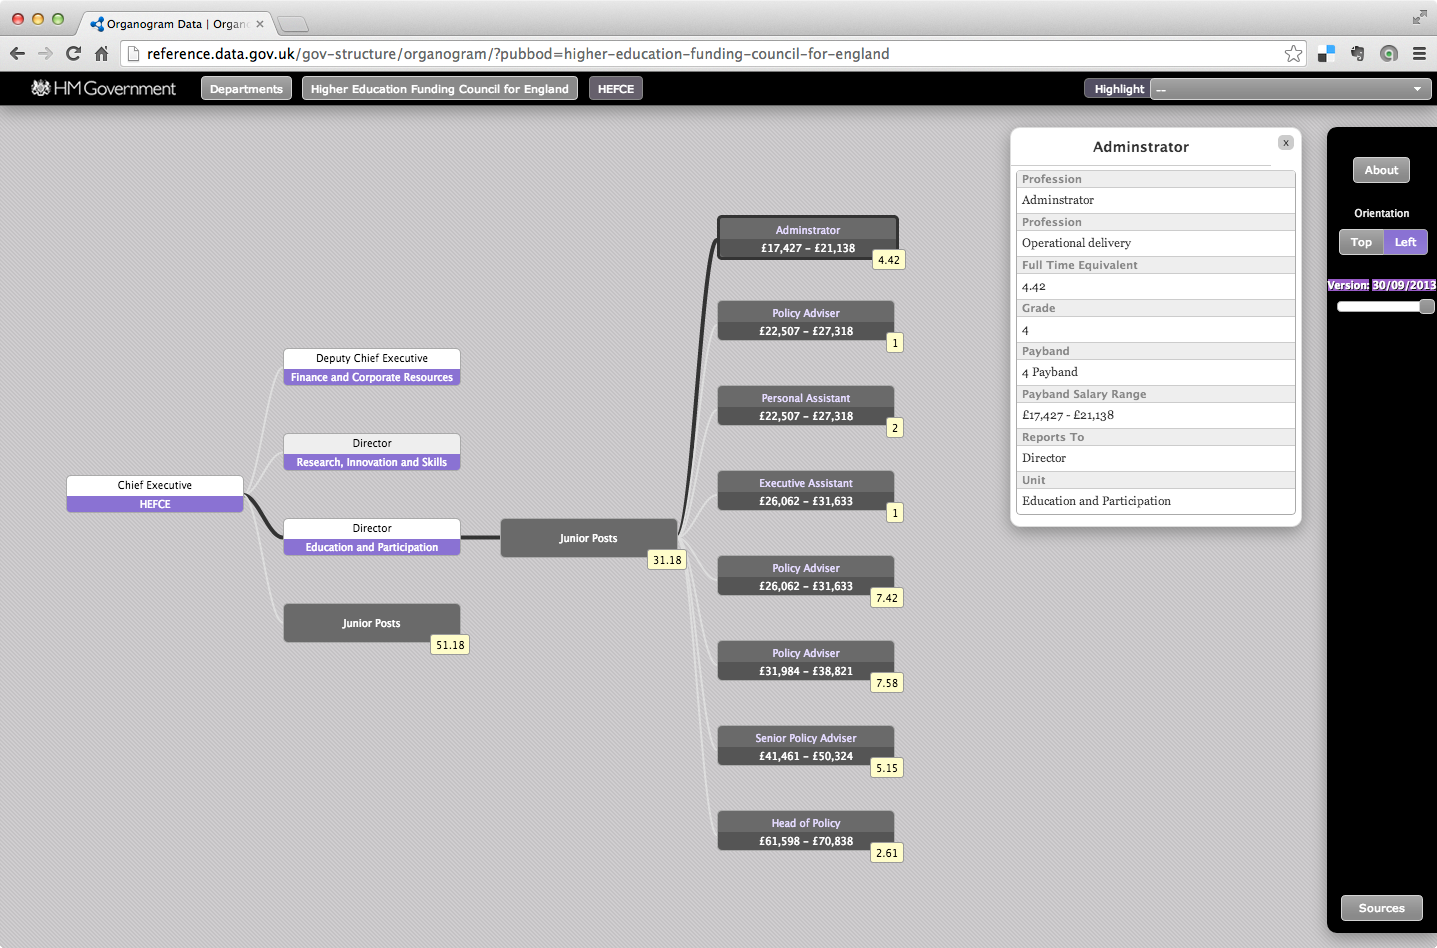 Csv On The Web Use Cases And Requirements Diagrams Additionally Case Diagram Atm Card Screenshot Of Organogram Viewer Application Showing Hefce Data